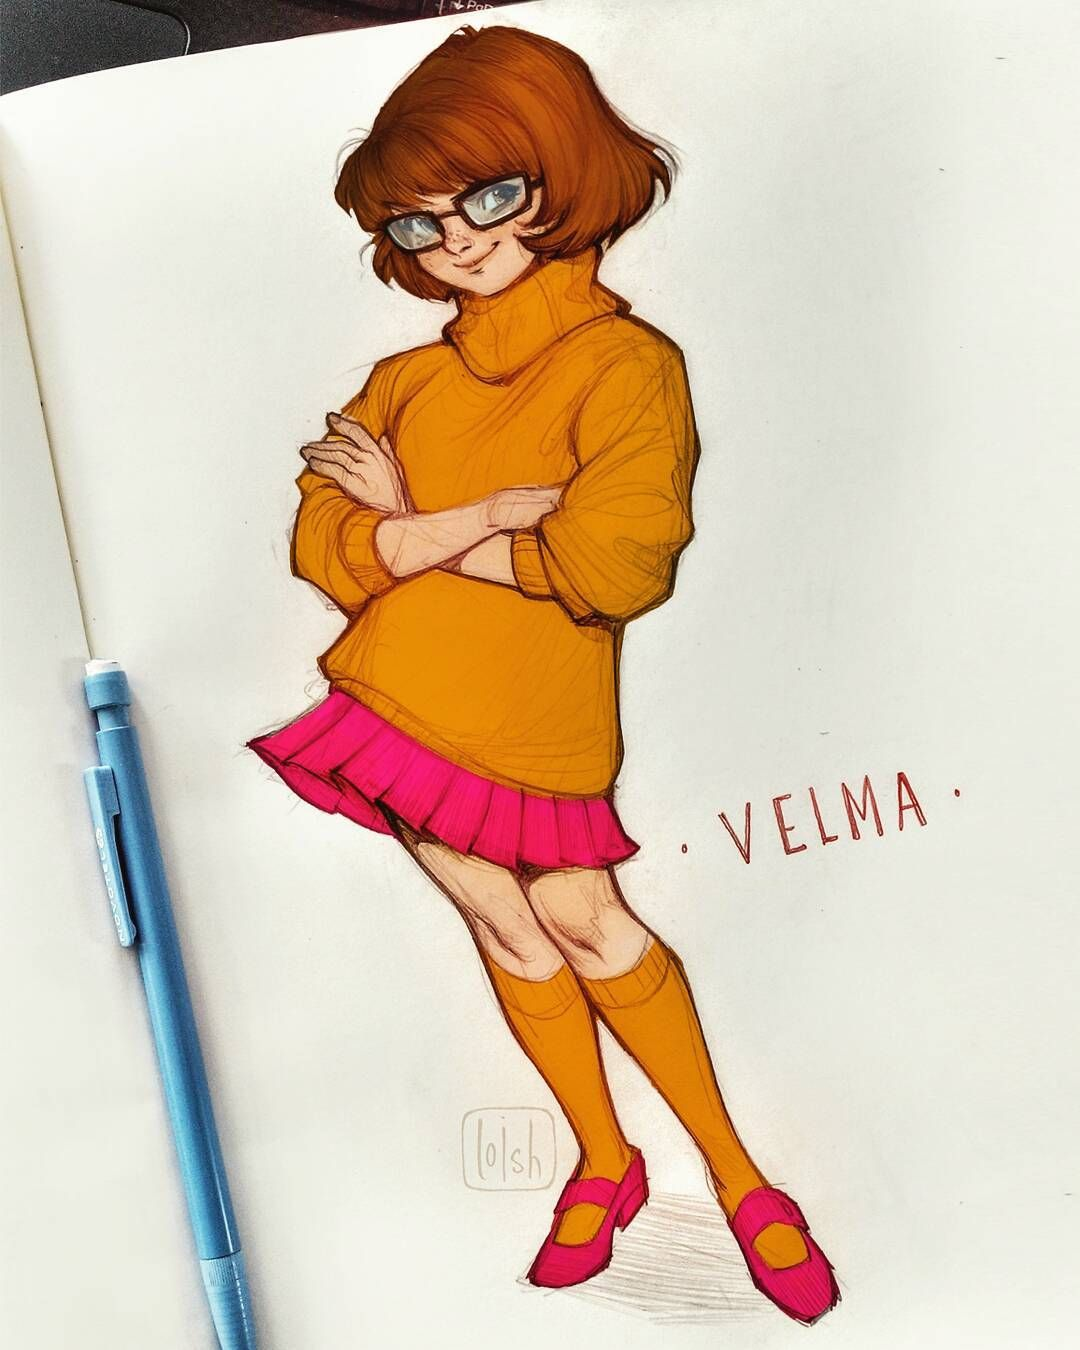 Velma (again)! Just Put Some Basic Photoshop Colors On Top